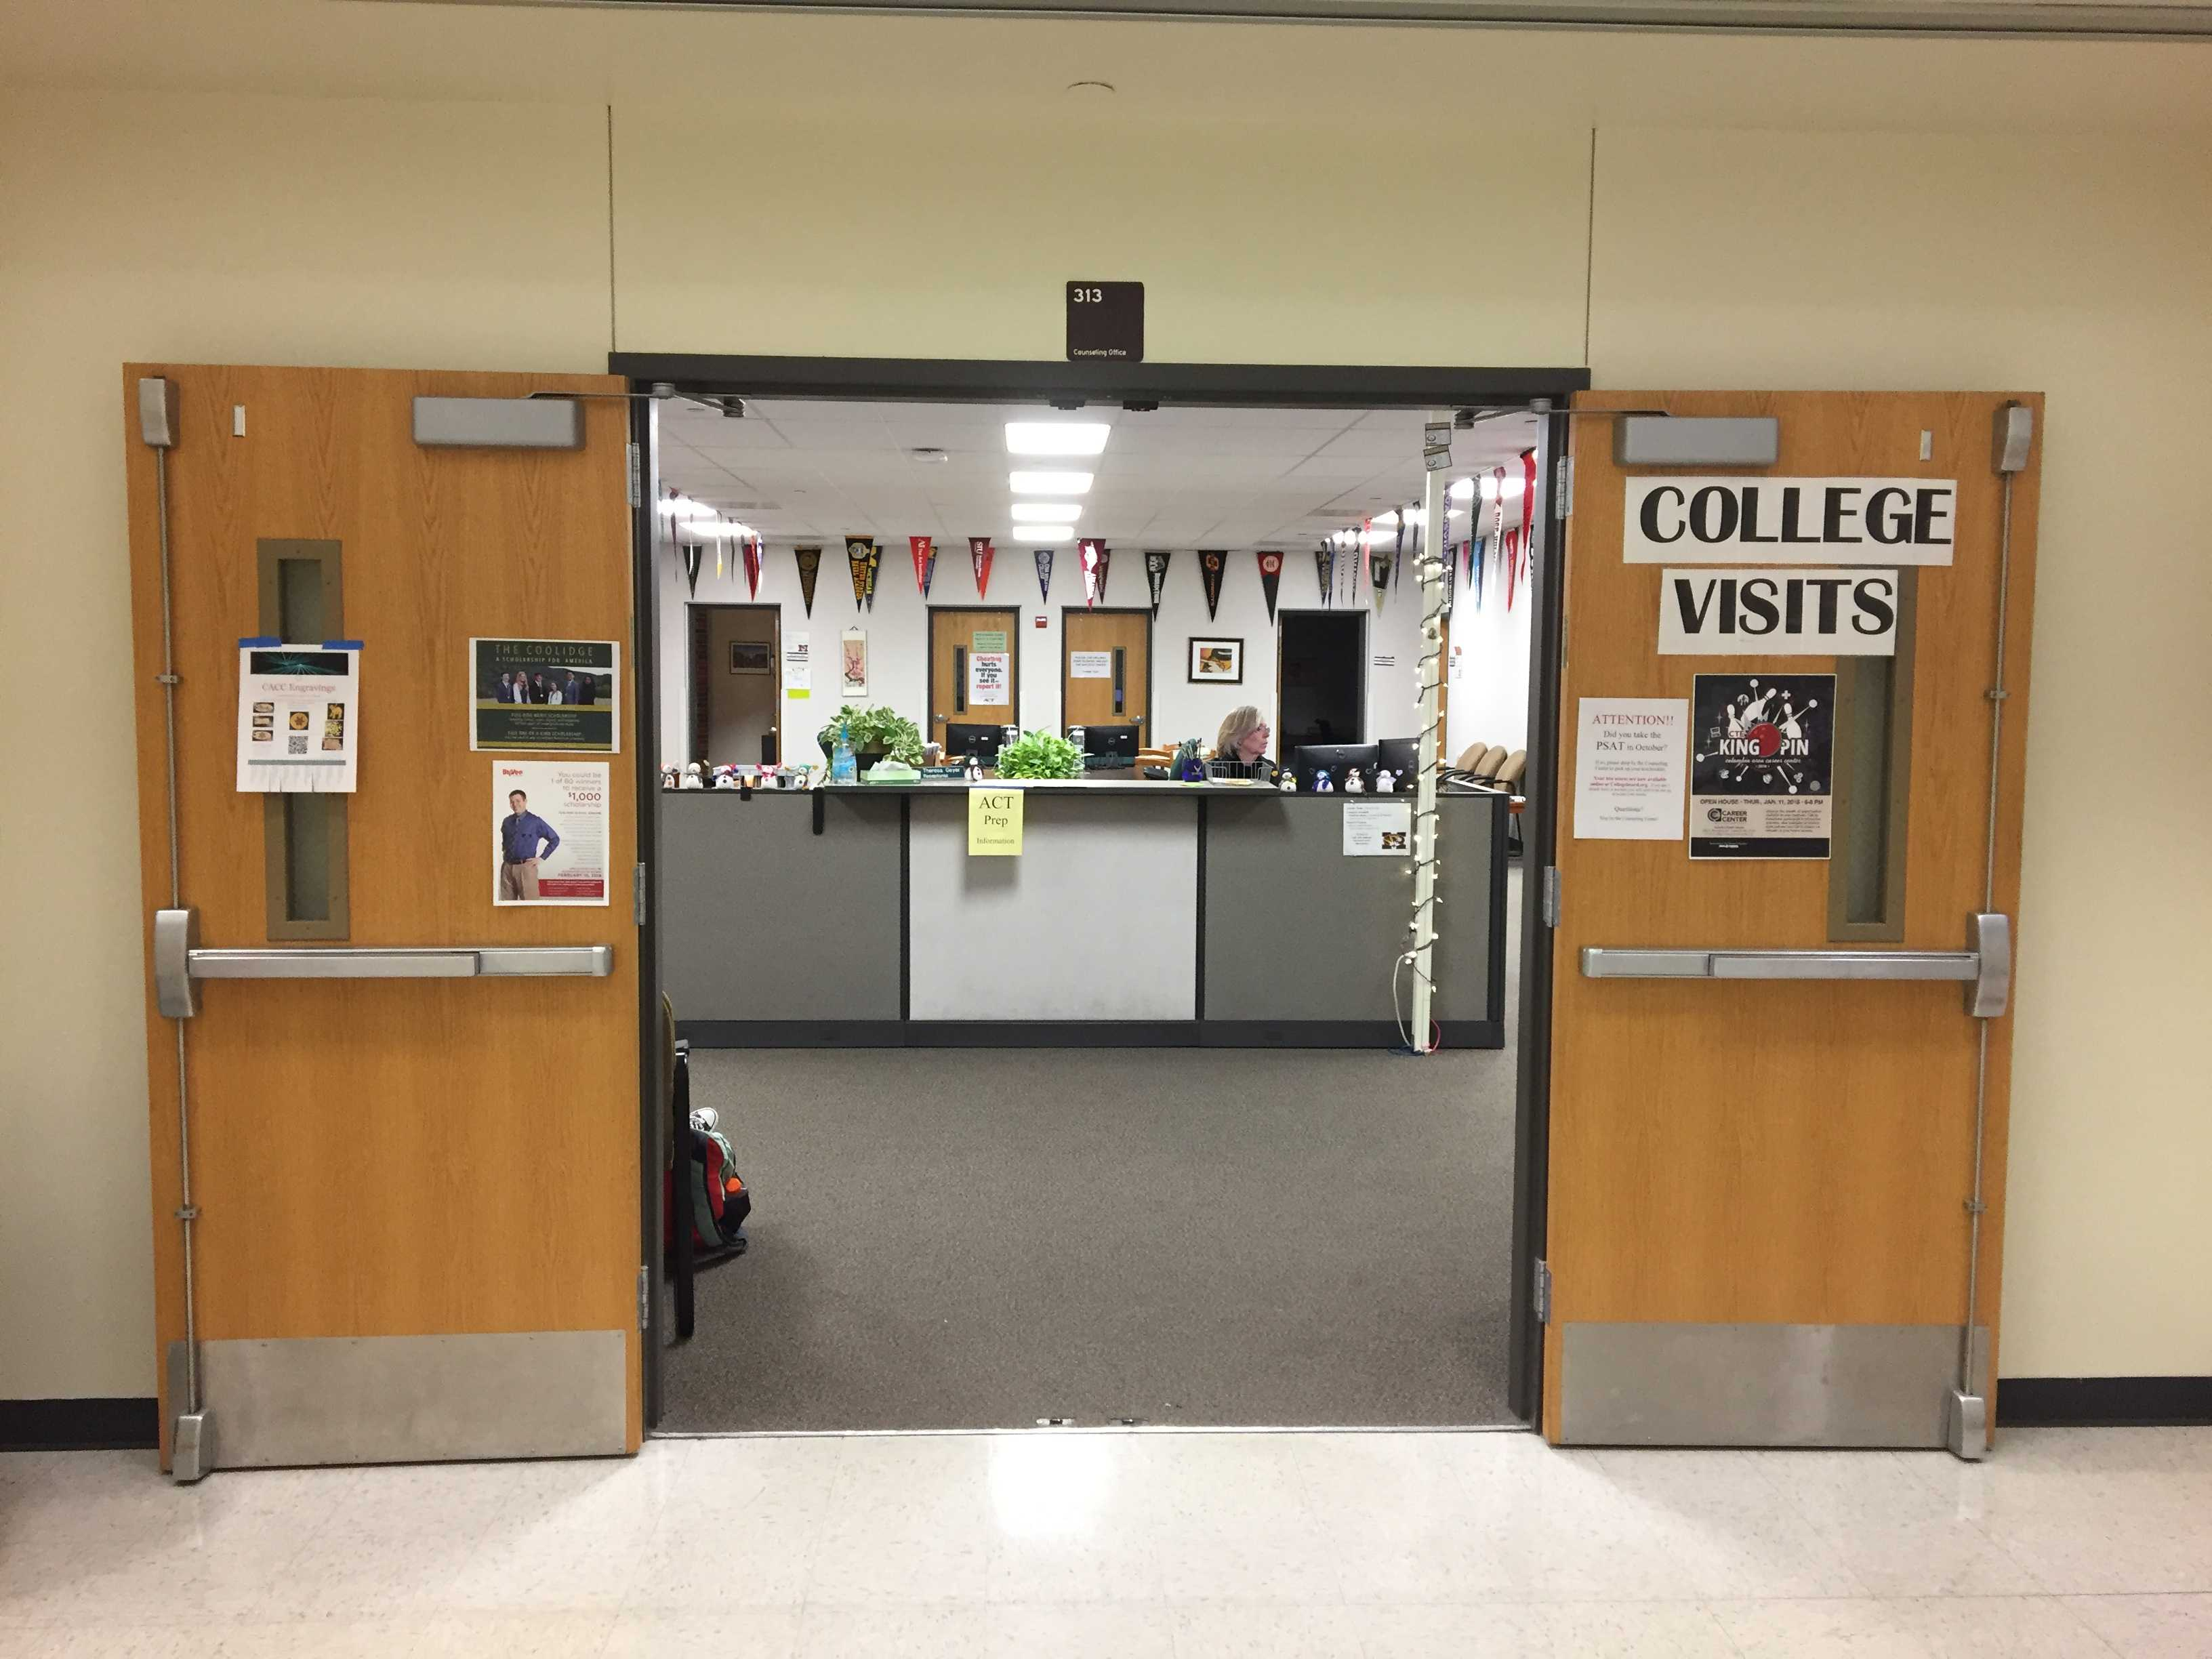 The entrance to the counseling office